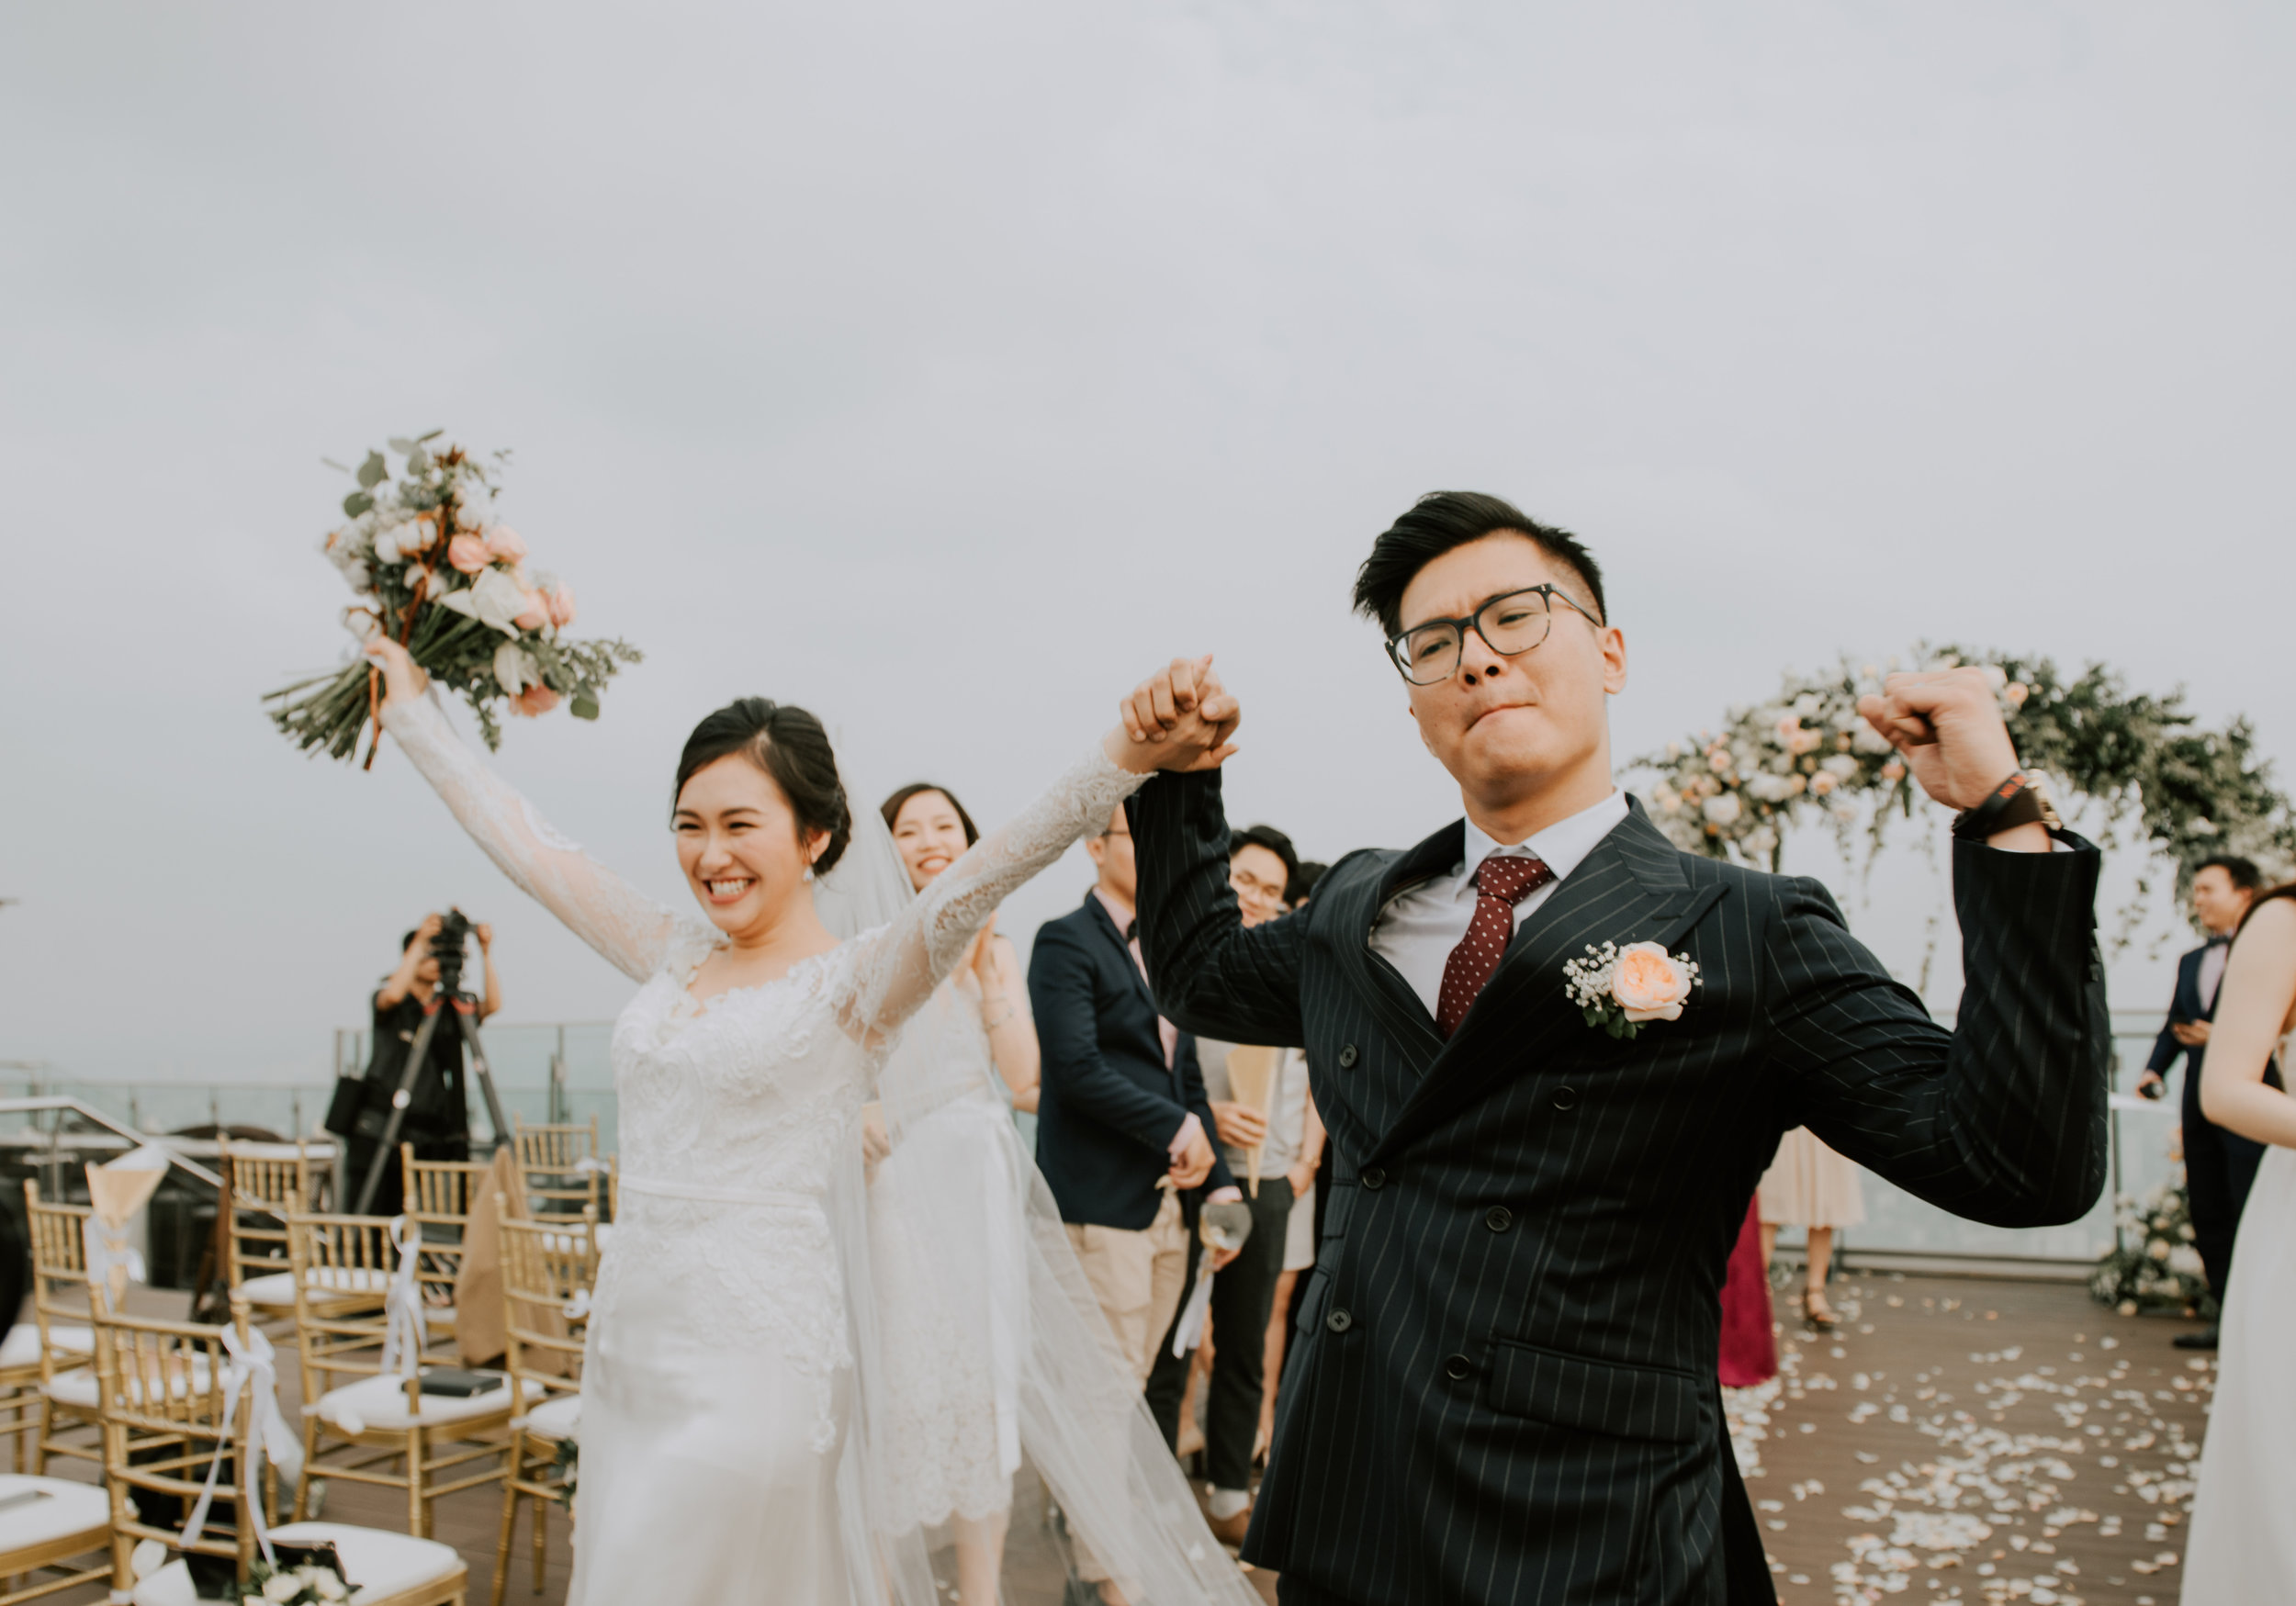 """HIEN TRANG & DUC ANH - """"We are a couple living abroad, and we kind of delayed the whole preparation until 2 months before the big day, so the day we woke up and realized we had tons of things to do, we contacted The F Lab. And it went beautifully <3 It took us so long (2 months after our wedding) but better late than never to write these words to the planning team behind the success of our happiest day, especially our wedding planner Ngoc Hoang…"""""""